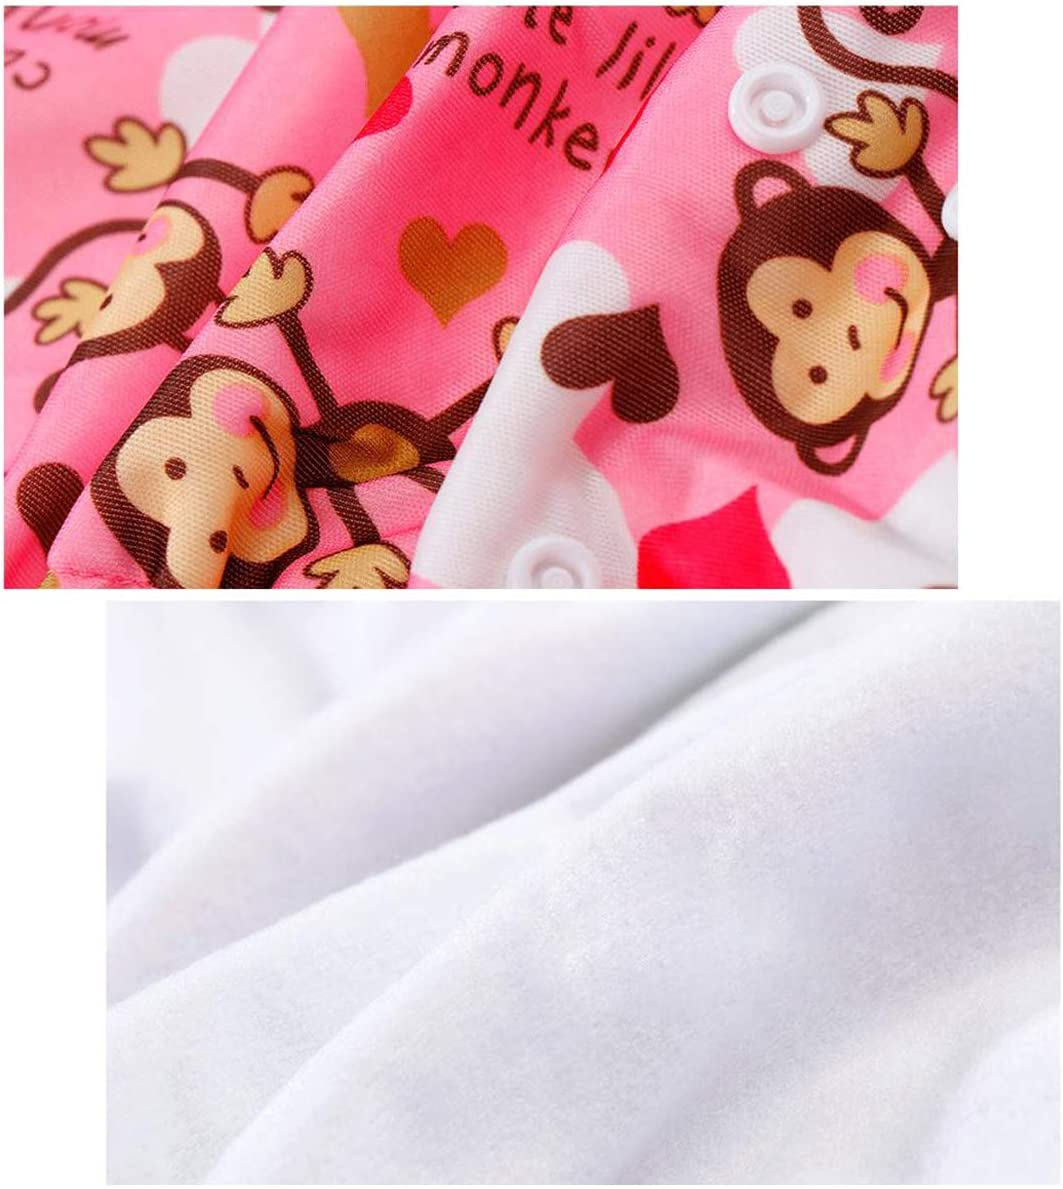 DEBAIJIA Baby Diaper Pants Cloth Cover Cartoon Printing Cute Casual Adjustable Nappies Learning Pants Reusable Dual Opening Washable Breathable Waterproof for 0-3 Years Newborn Toddler Infant 2 PCS